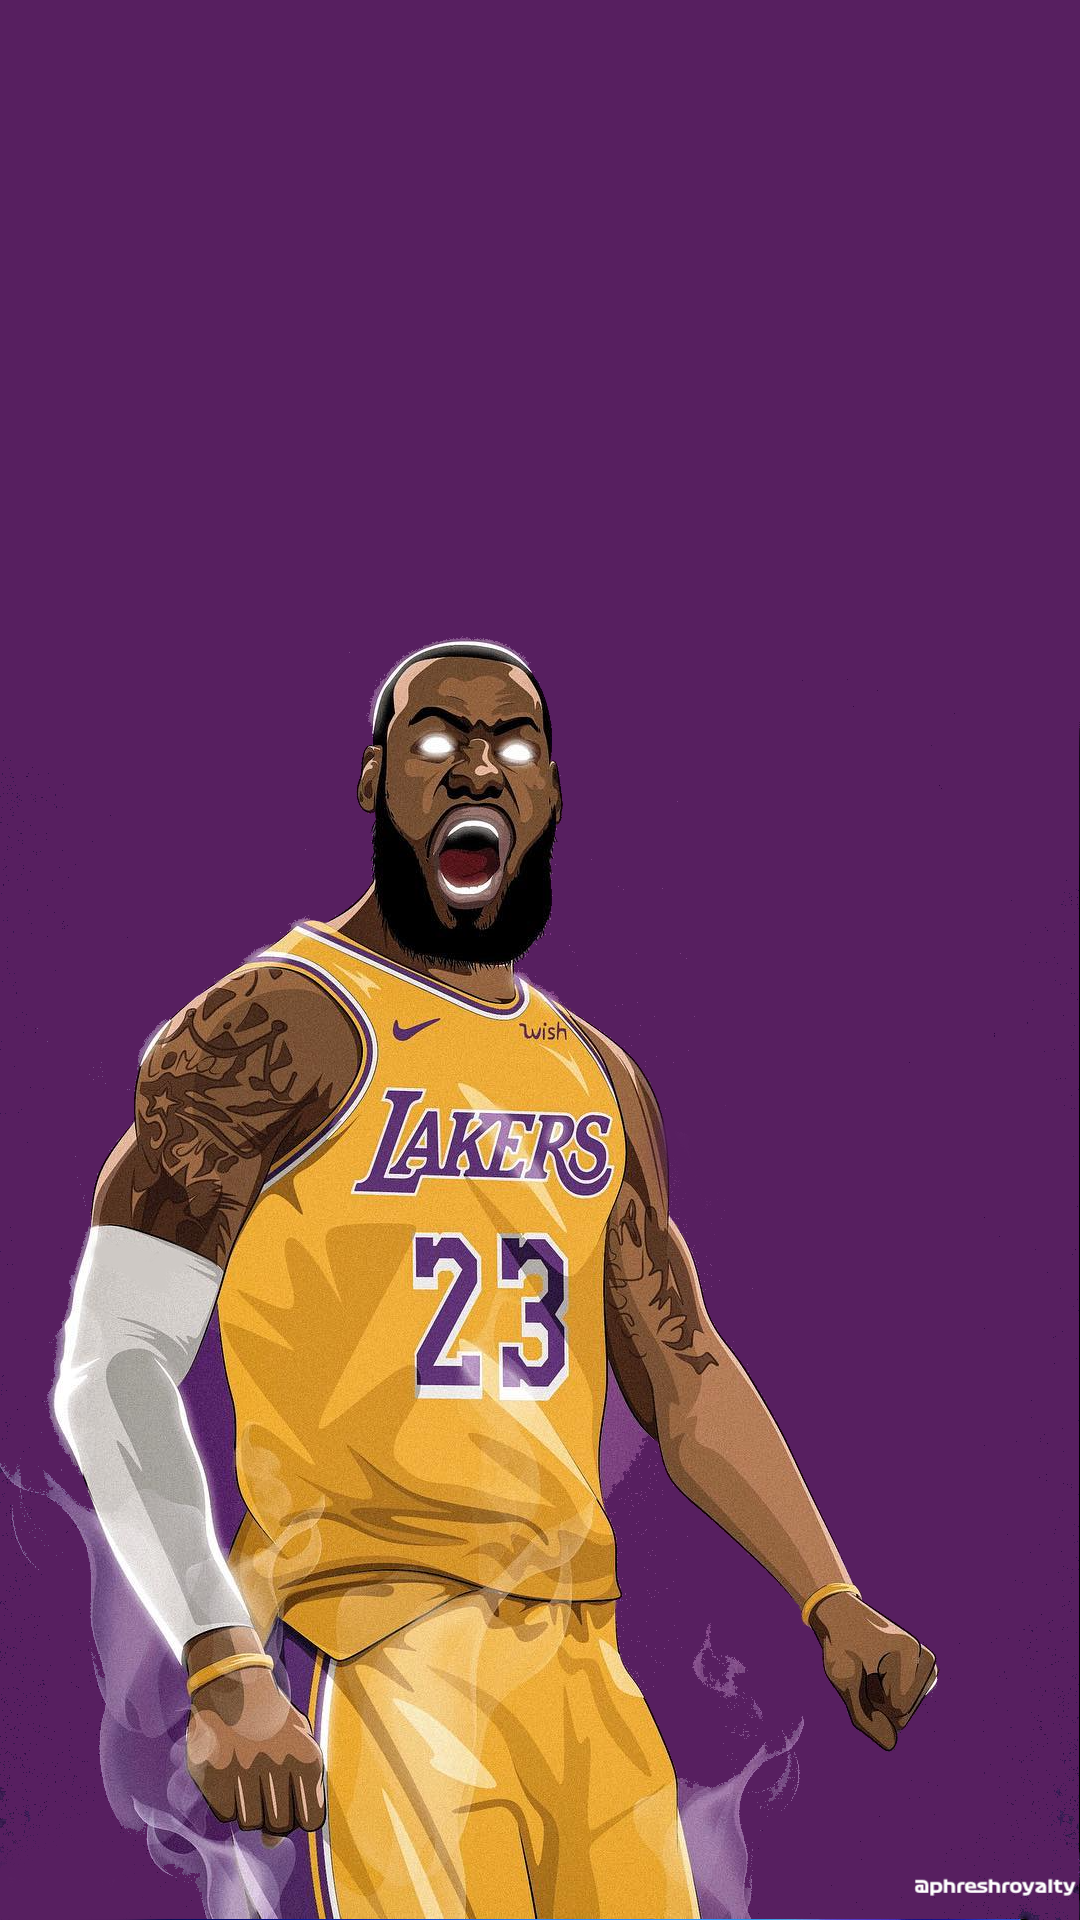 Lakers Anthony Davis Wallpaper Hd On High Quality Wallpaper On Snowman Wallpapers Com Desktop In 2020 Lebron James Wallpapers Lebron James Lakers Nba Basketball Art